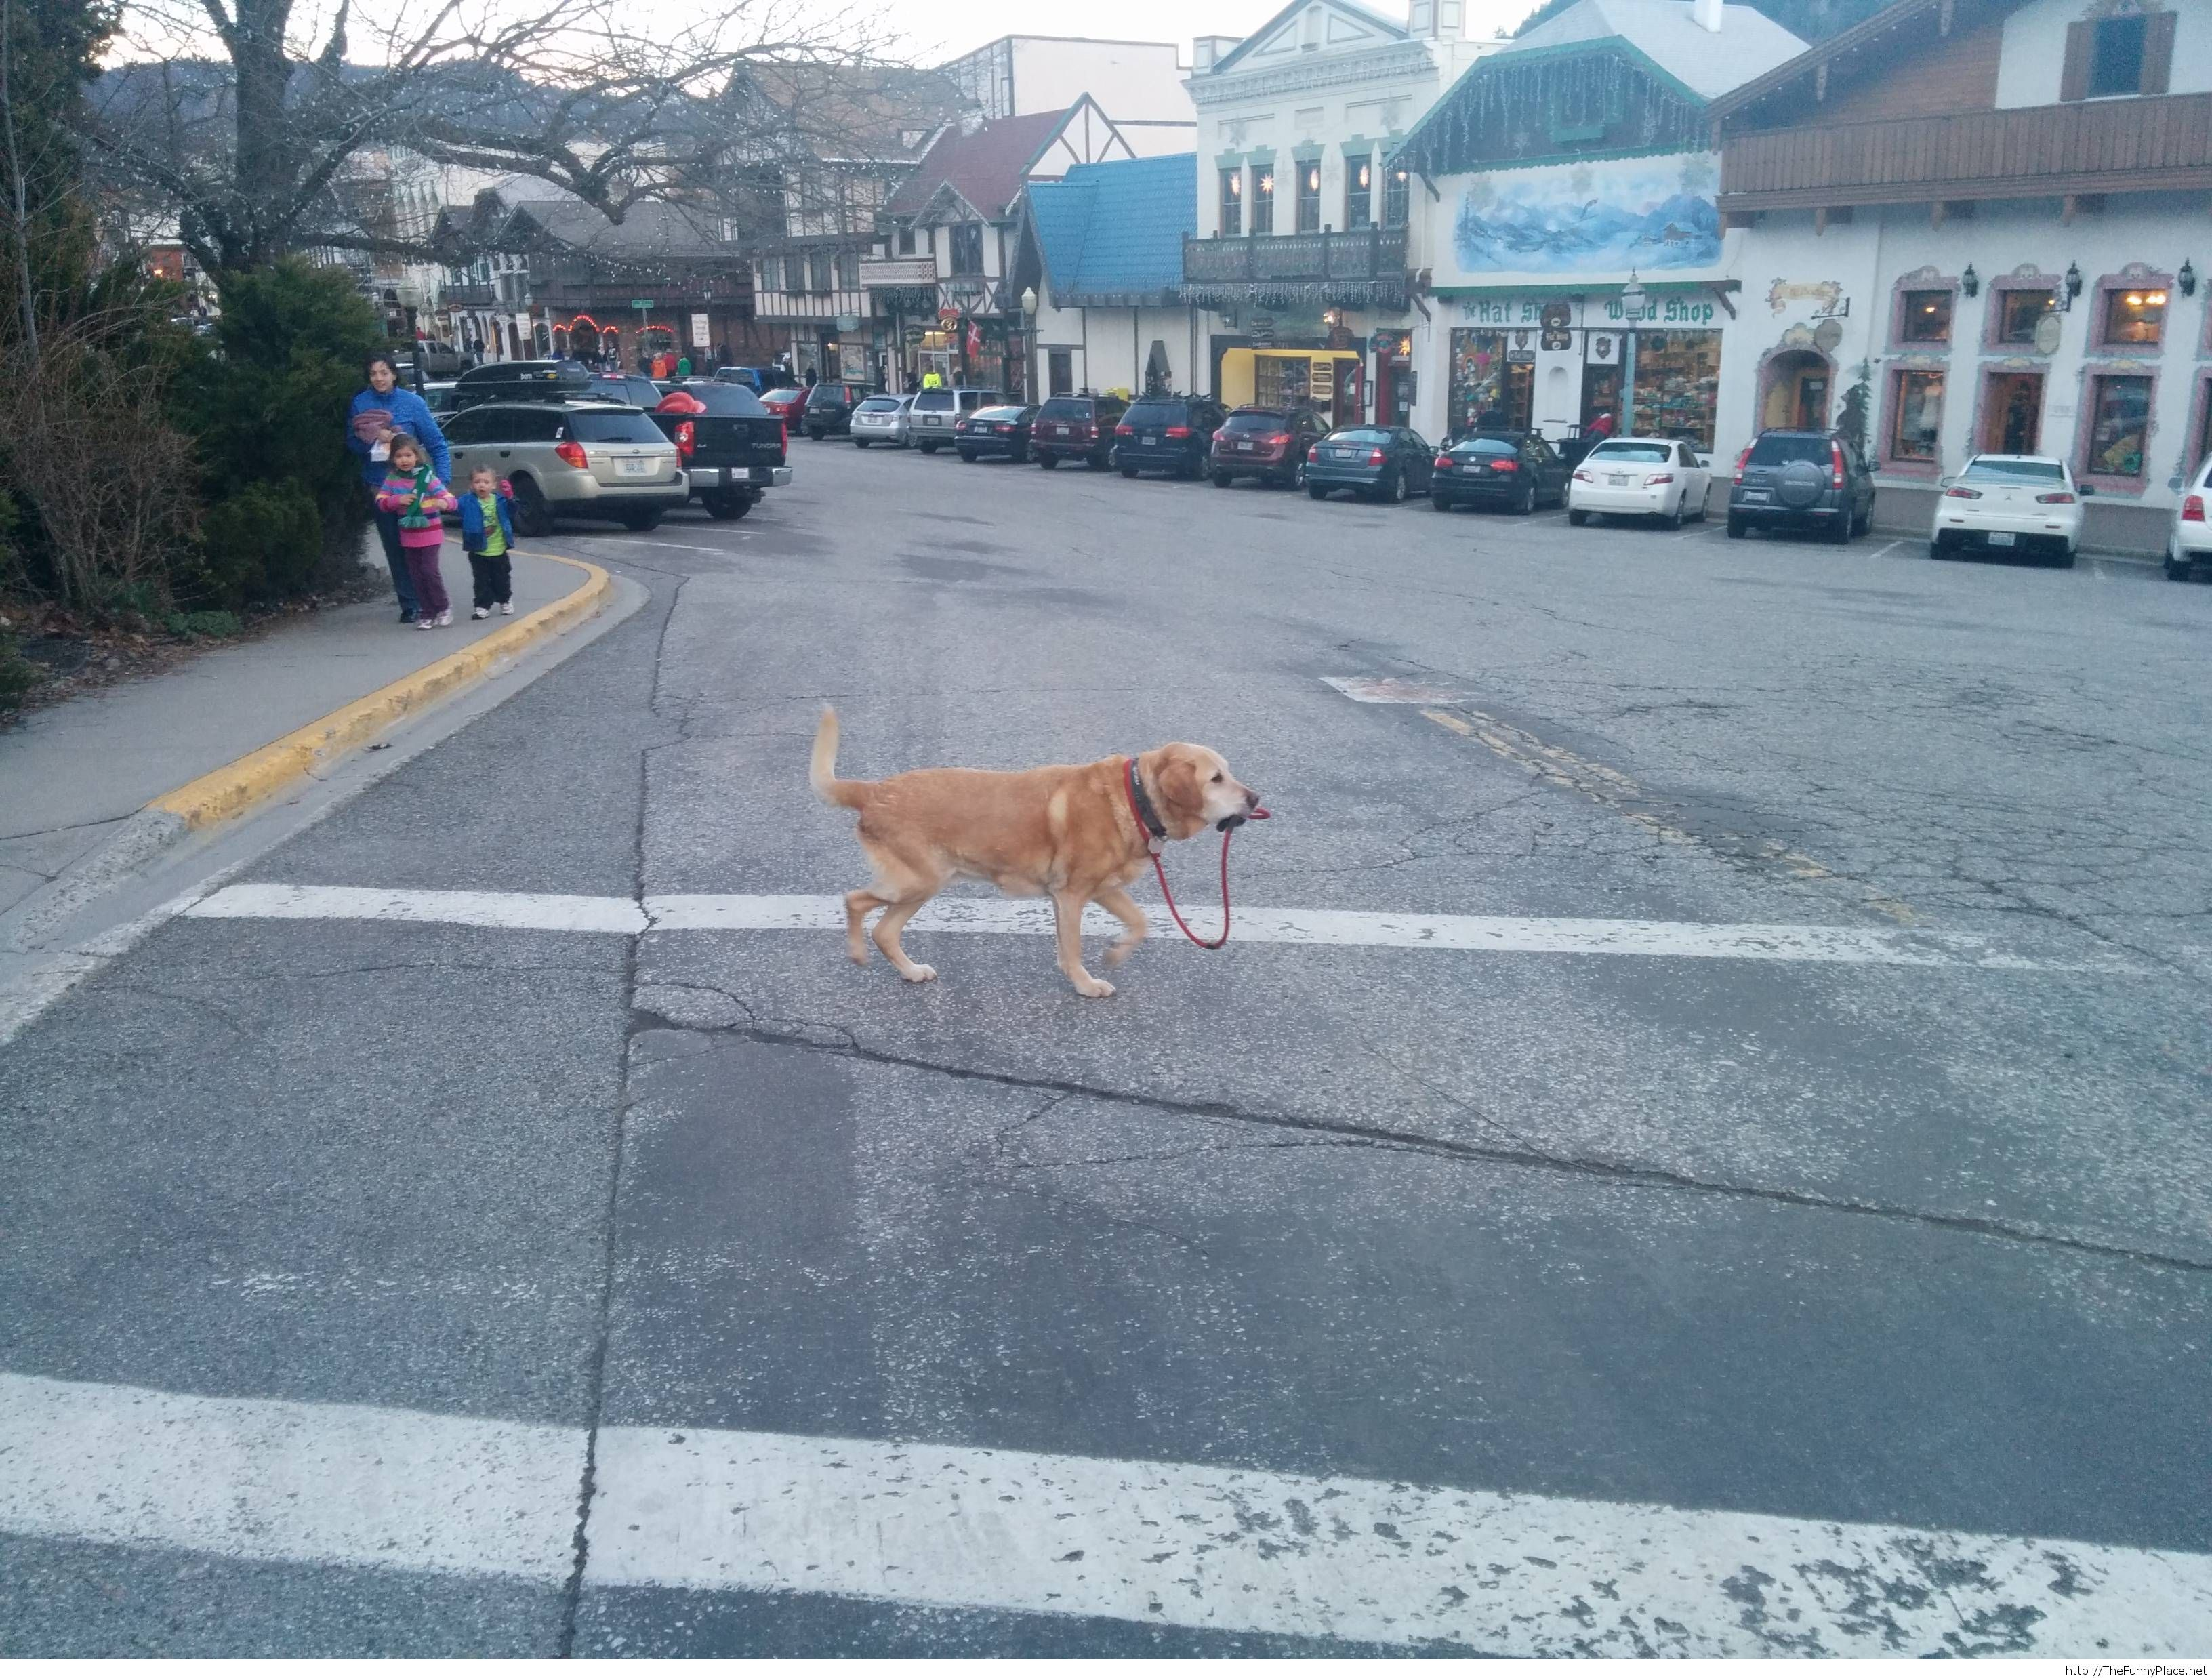 He takes himself to a walk, no need for humans here...